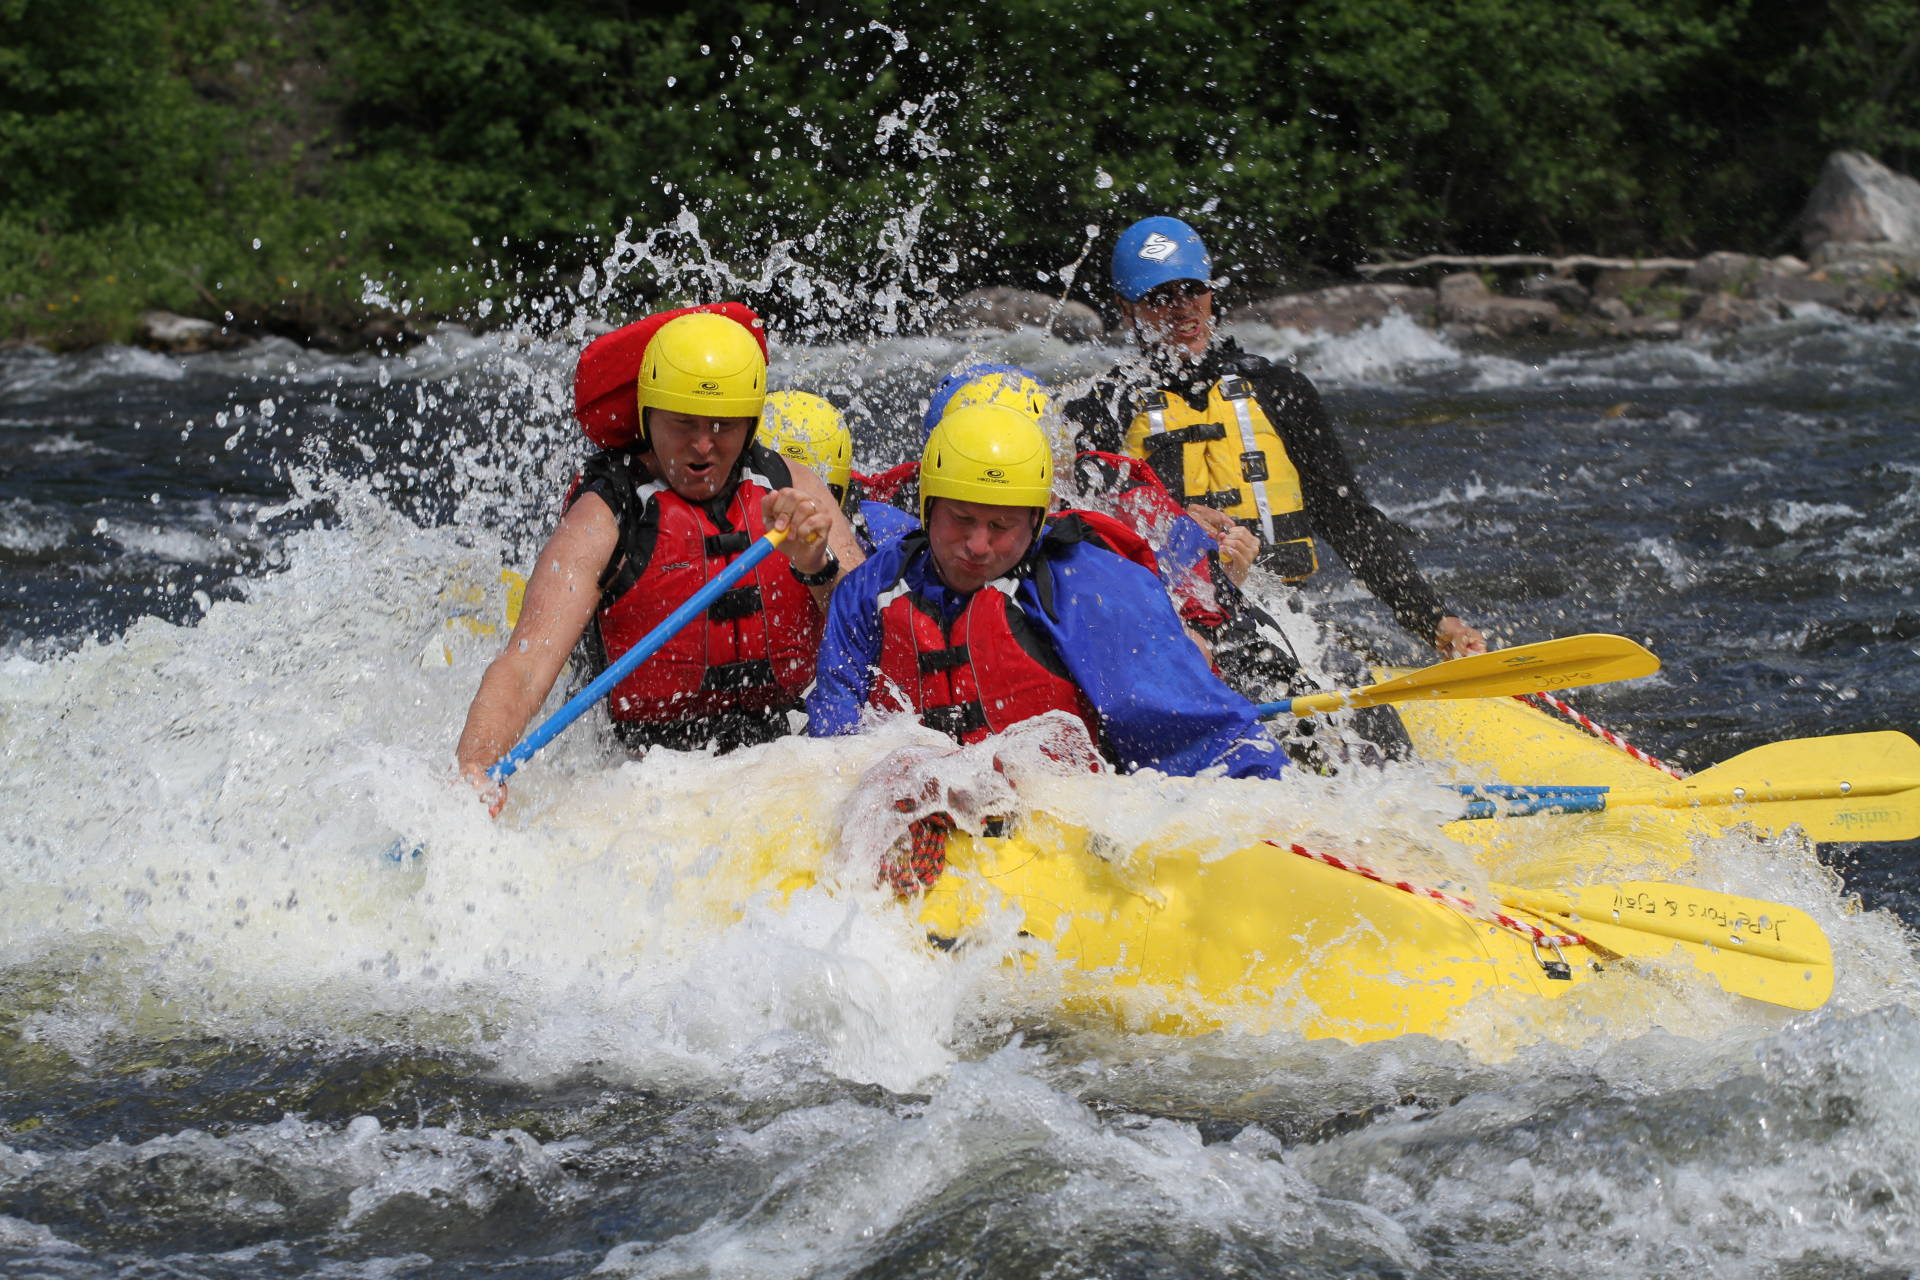 Medium level rafting in Tångböleströmmarna, Åre